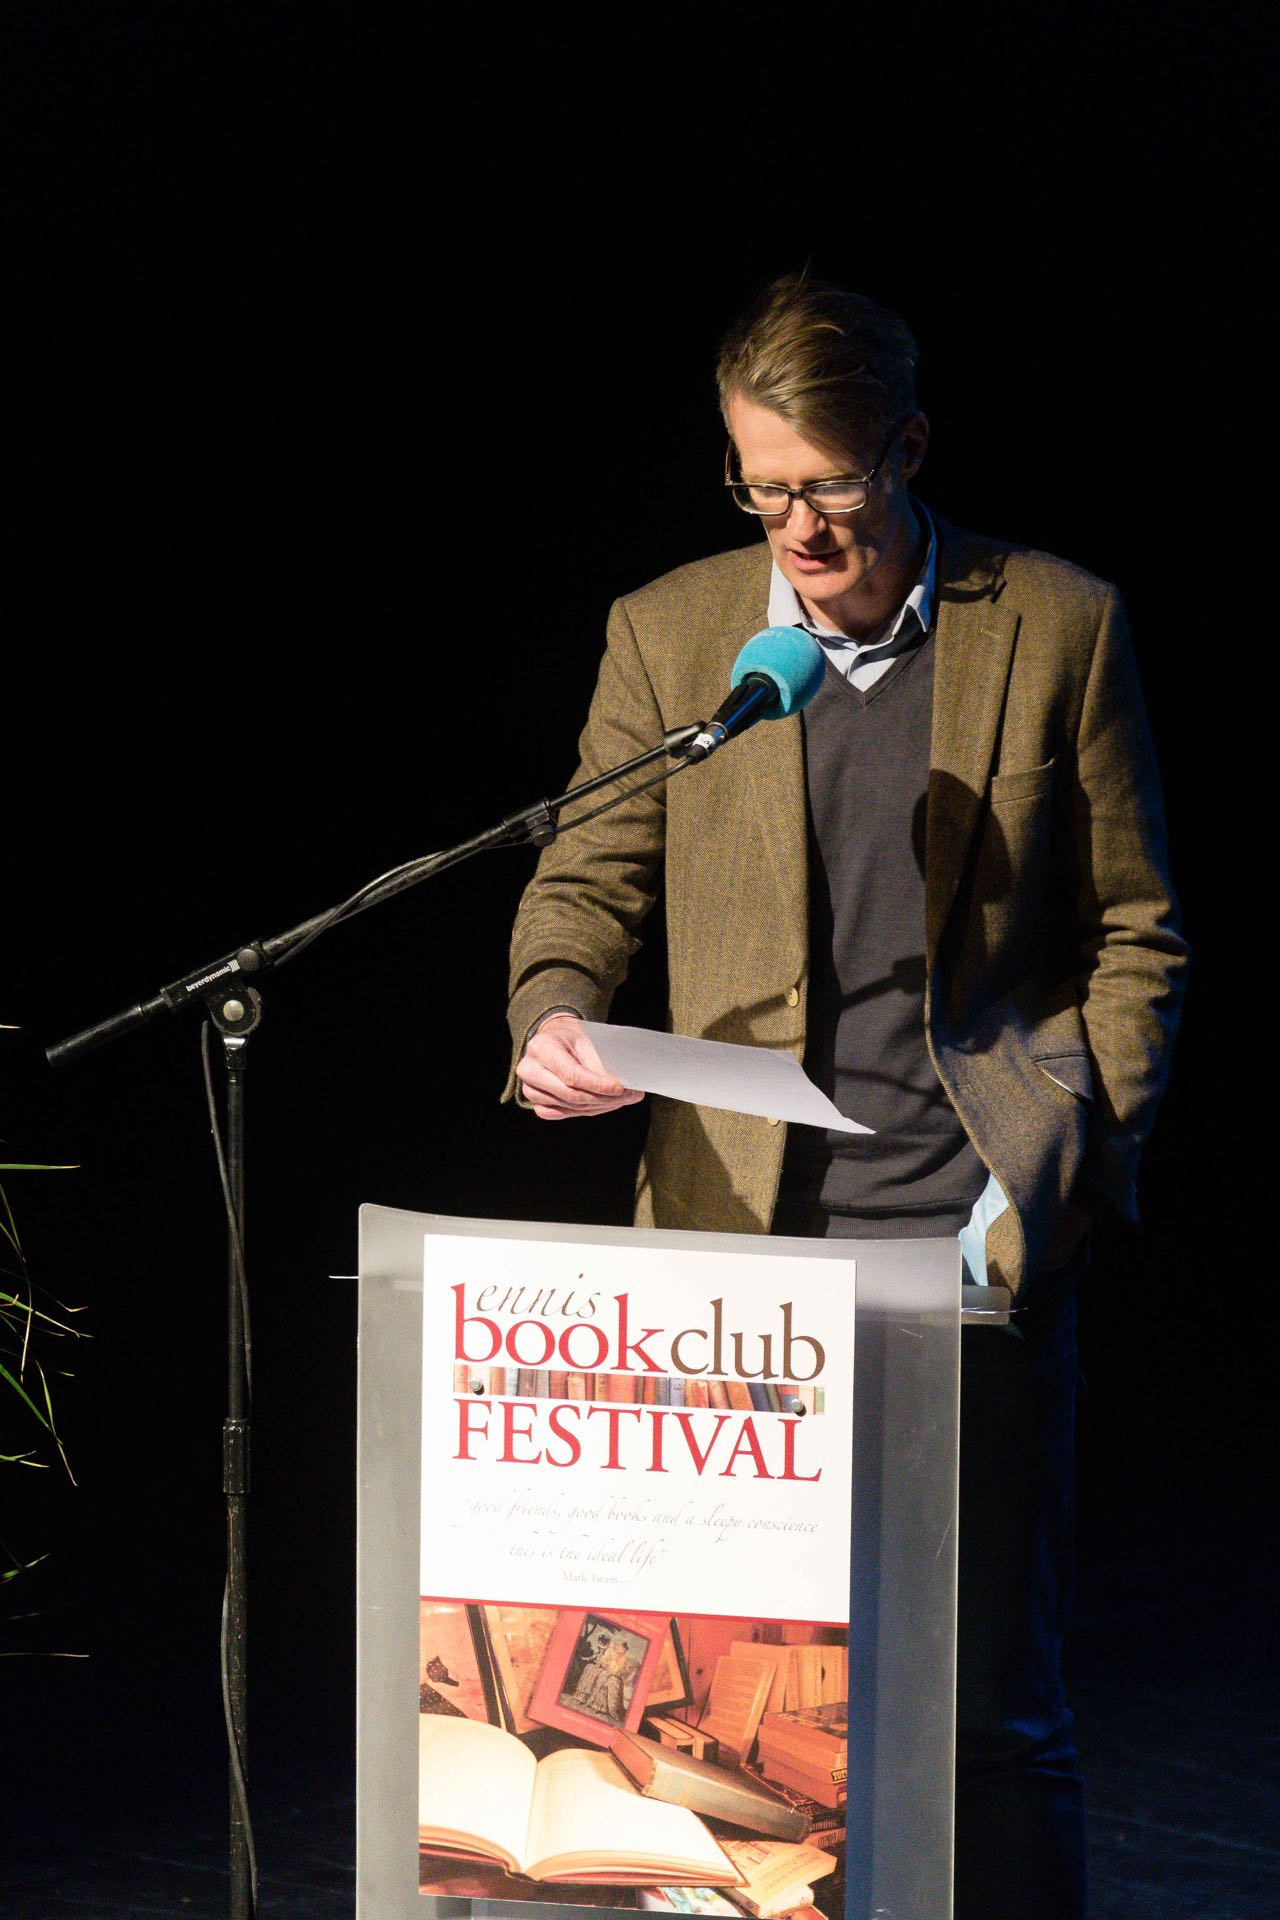 20190303_Ennis_Book_Club_Festival_2019_3005